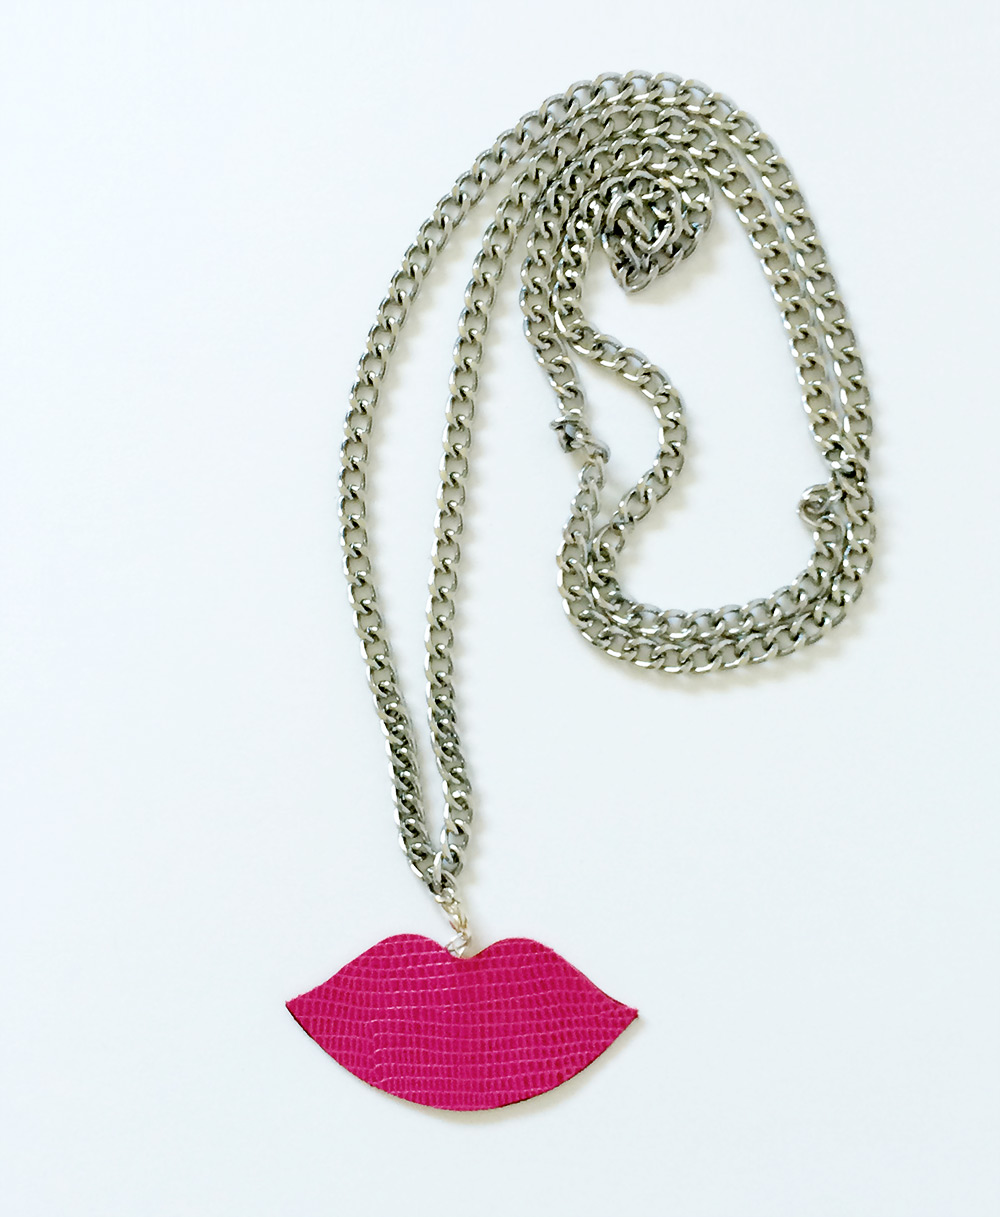 DIY Lips Necklaces by kraft&mint diy crafts tutorials